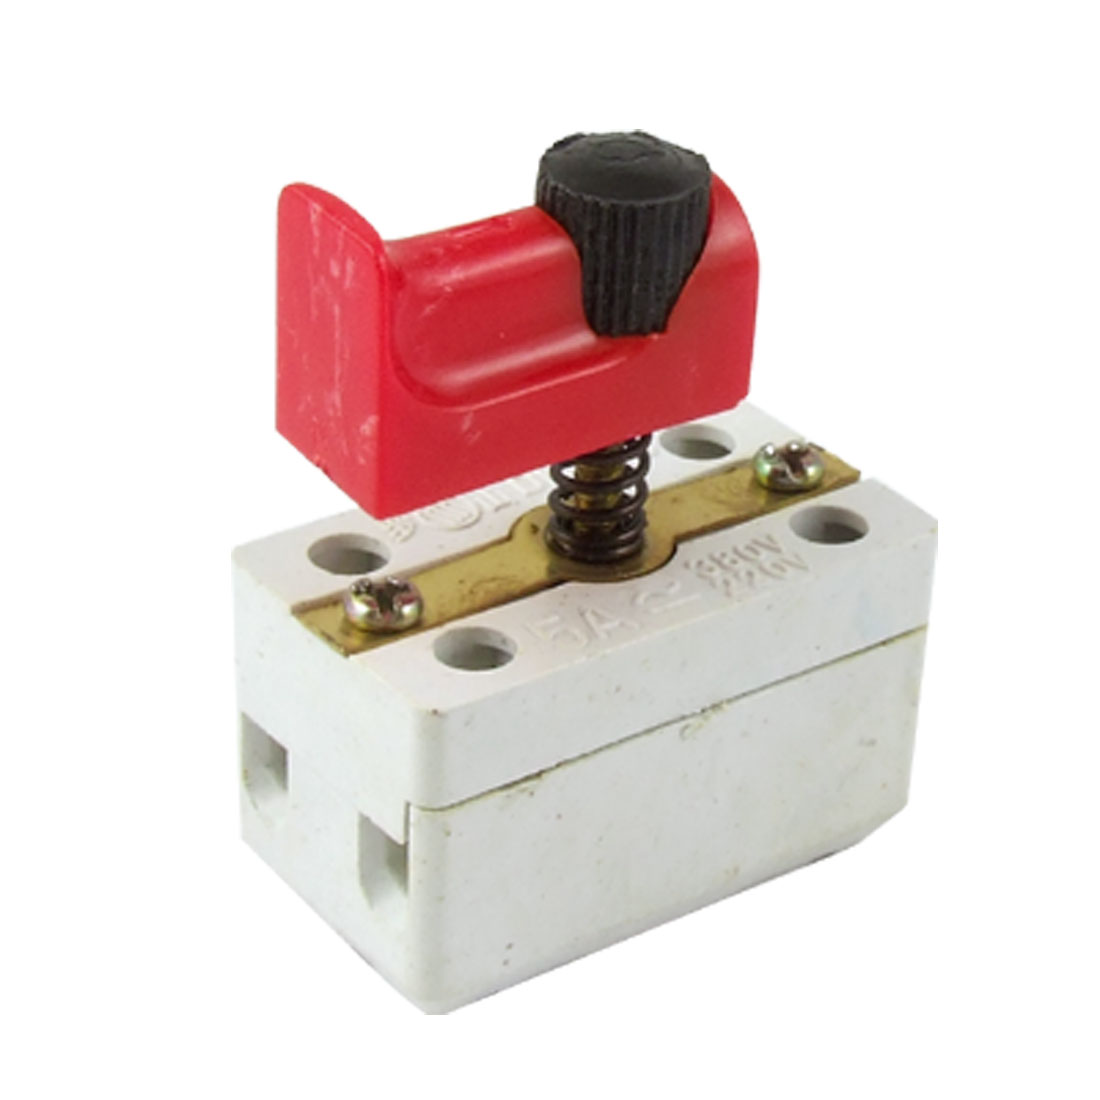 Electric Drill Power Tool Speed Control Trigger Switch 5A 380V DKZ1-5A